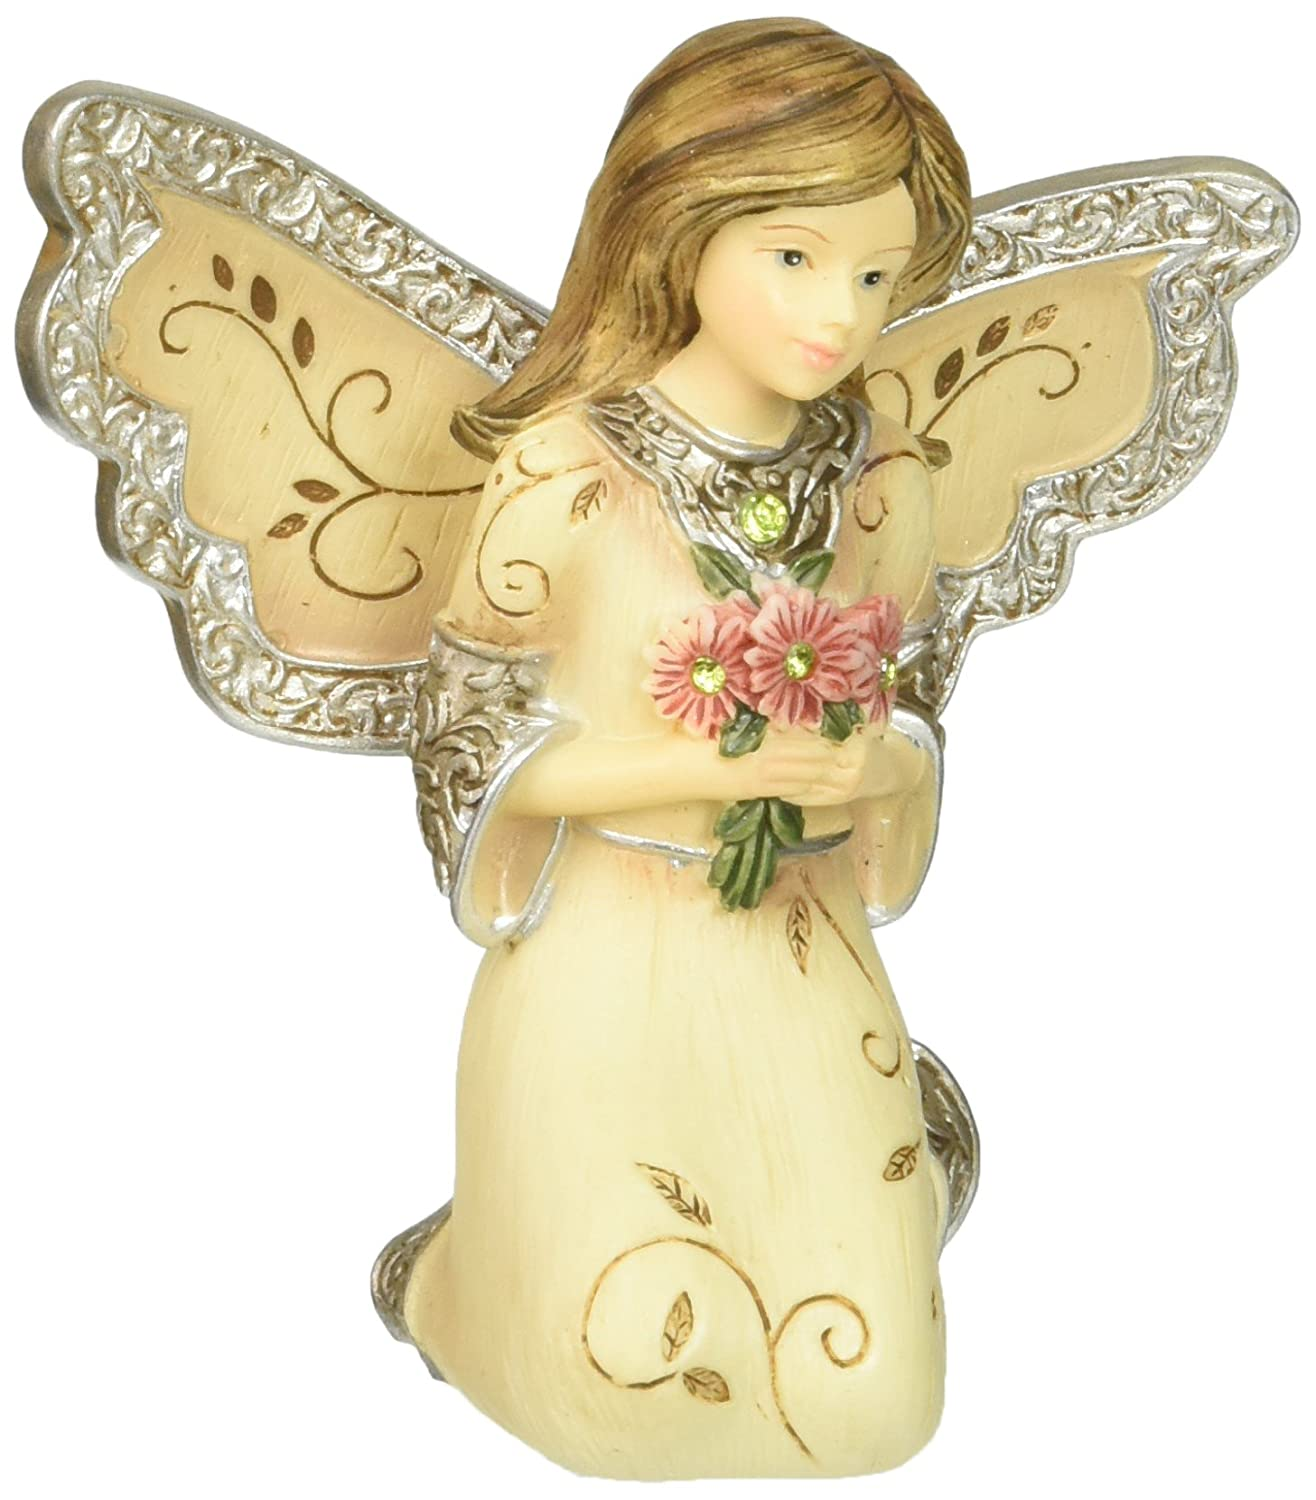 Elements August Monthly Angel Figurine, Includes Peridot Birthstone, 3-Inch